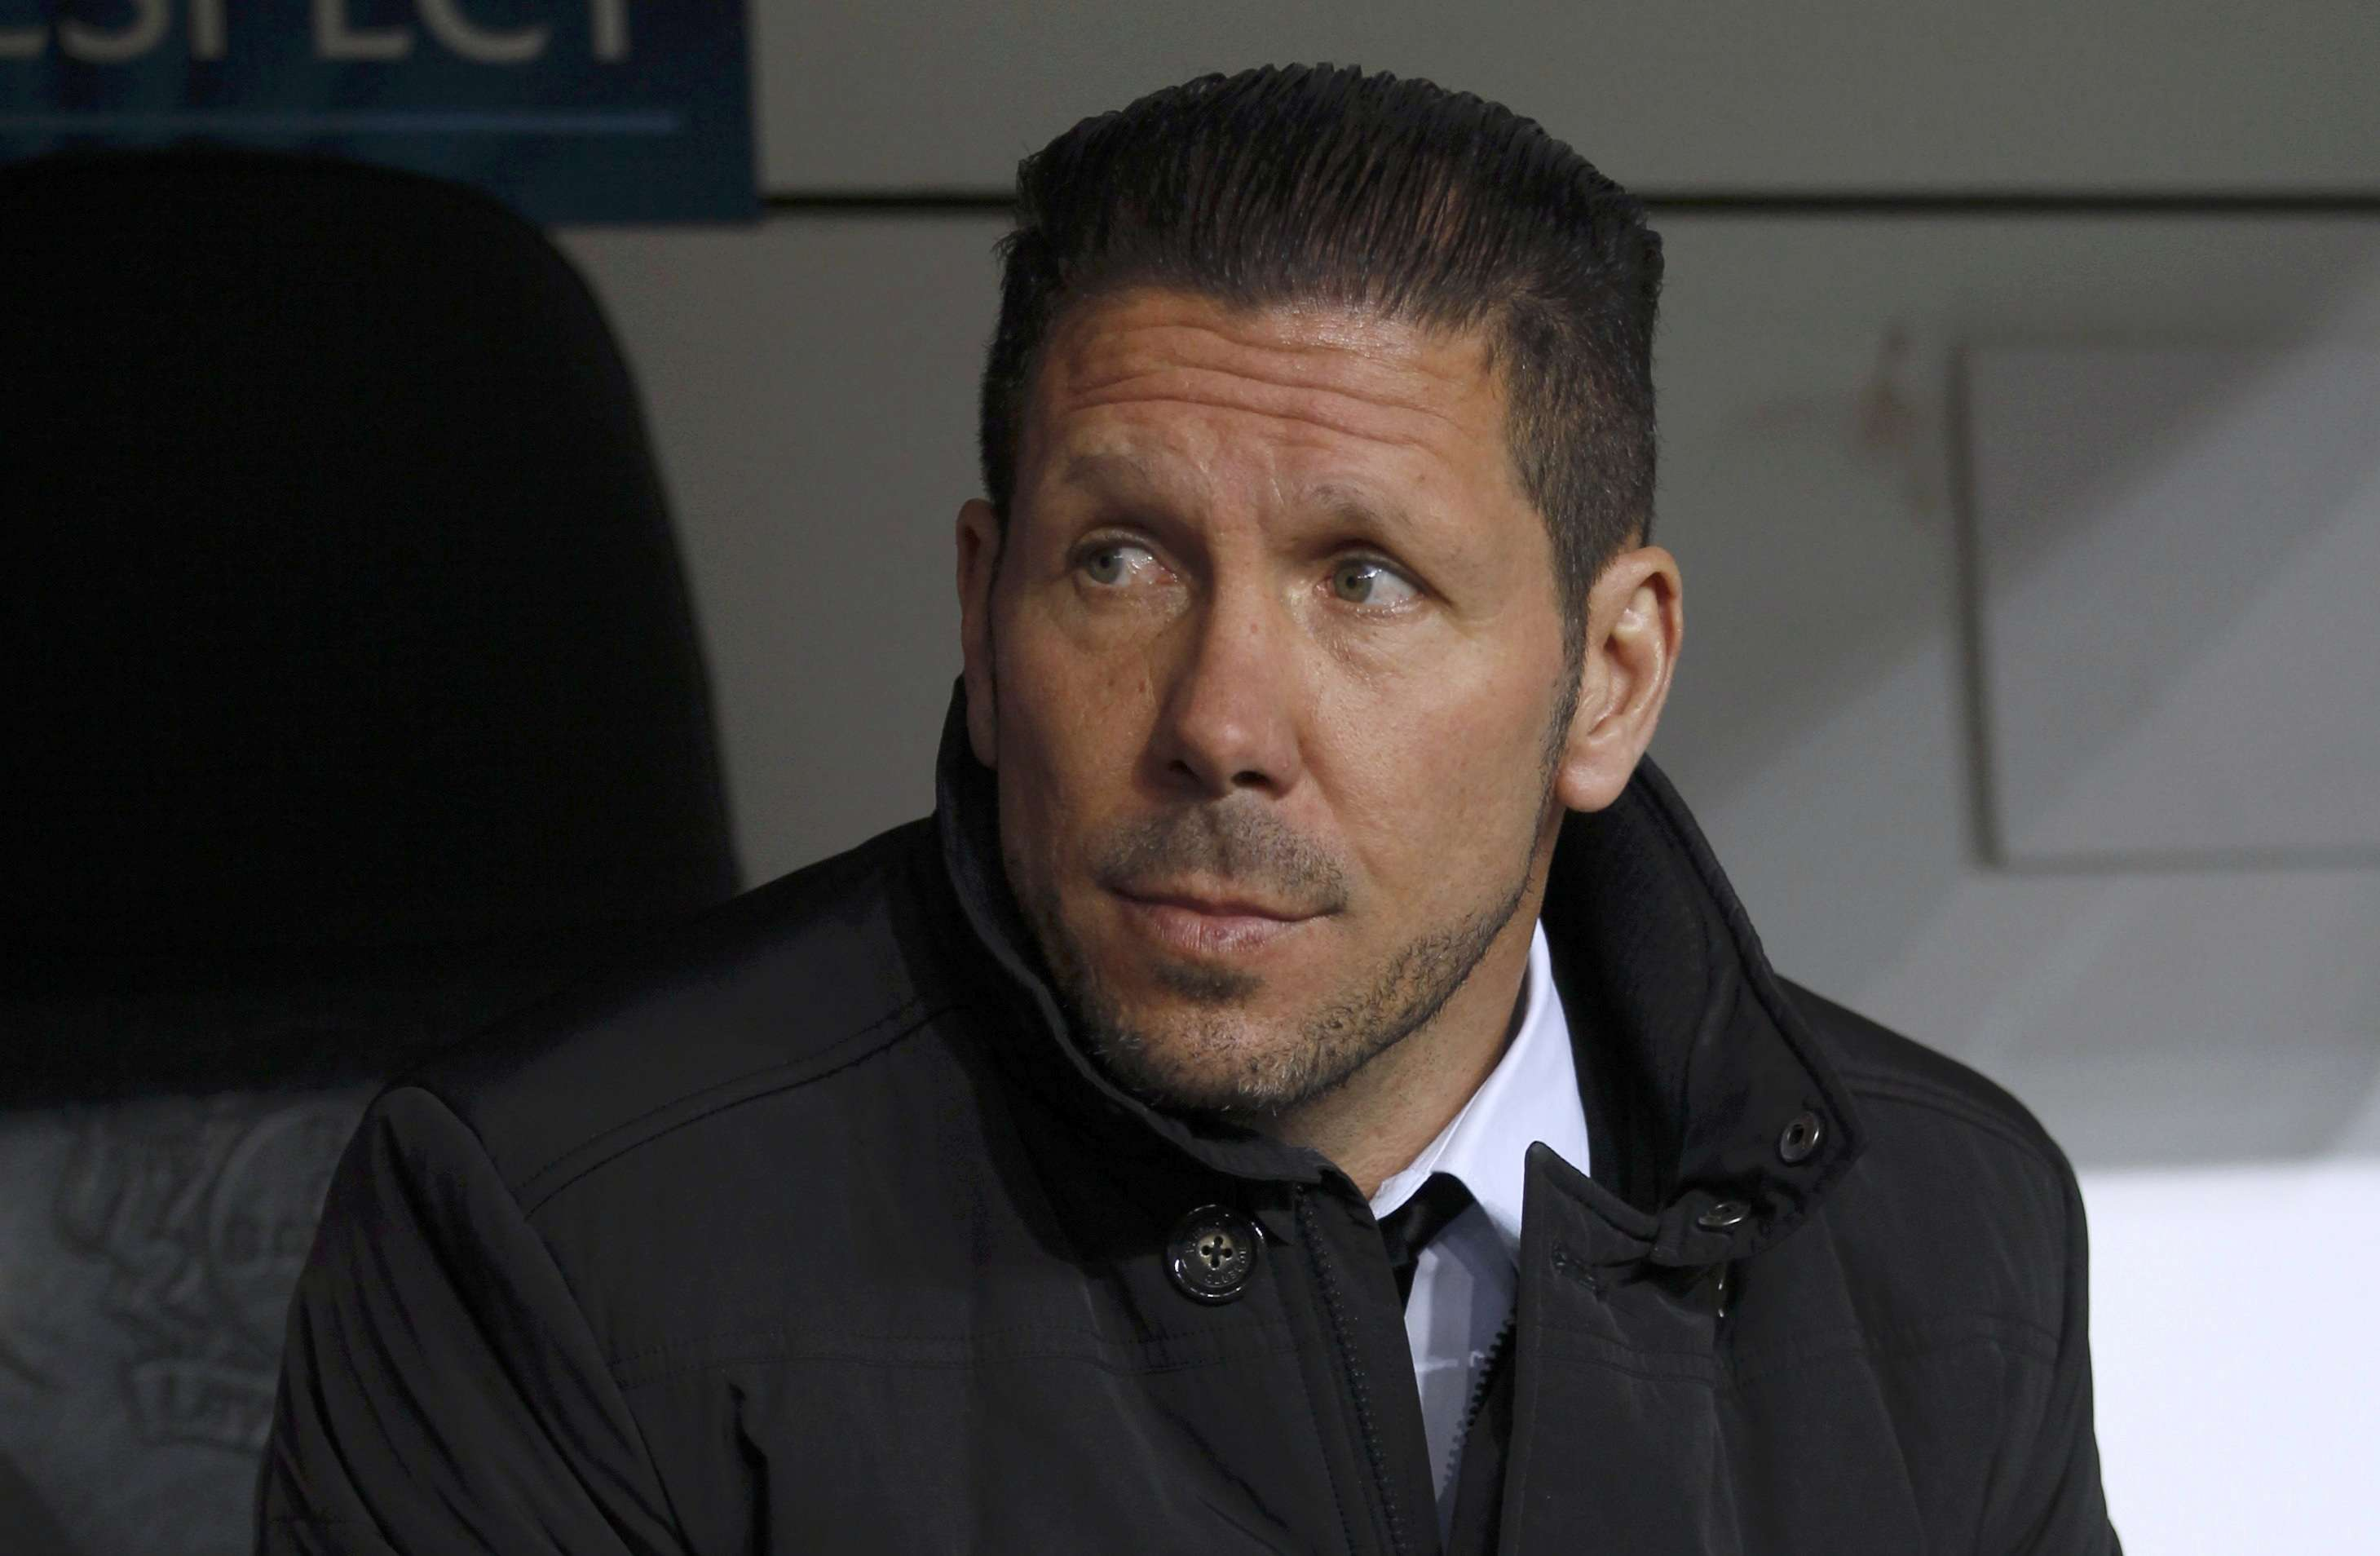 Atletico Madrid's coach Diego Simeone sits on the bench prior to the Champions League round of 16, first leg soccer match against Bayer Leverkusen, in Leverkusen February 25, 2015. REUTERS/Ina Fassbender (GERMANY - Tags: SPORT SOCCER HEADSHOT) Foto: INA FASSBENDER/REUTERS